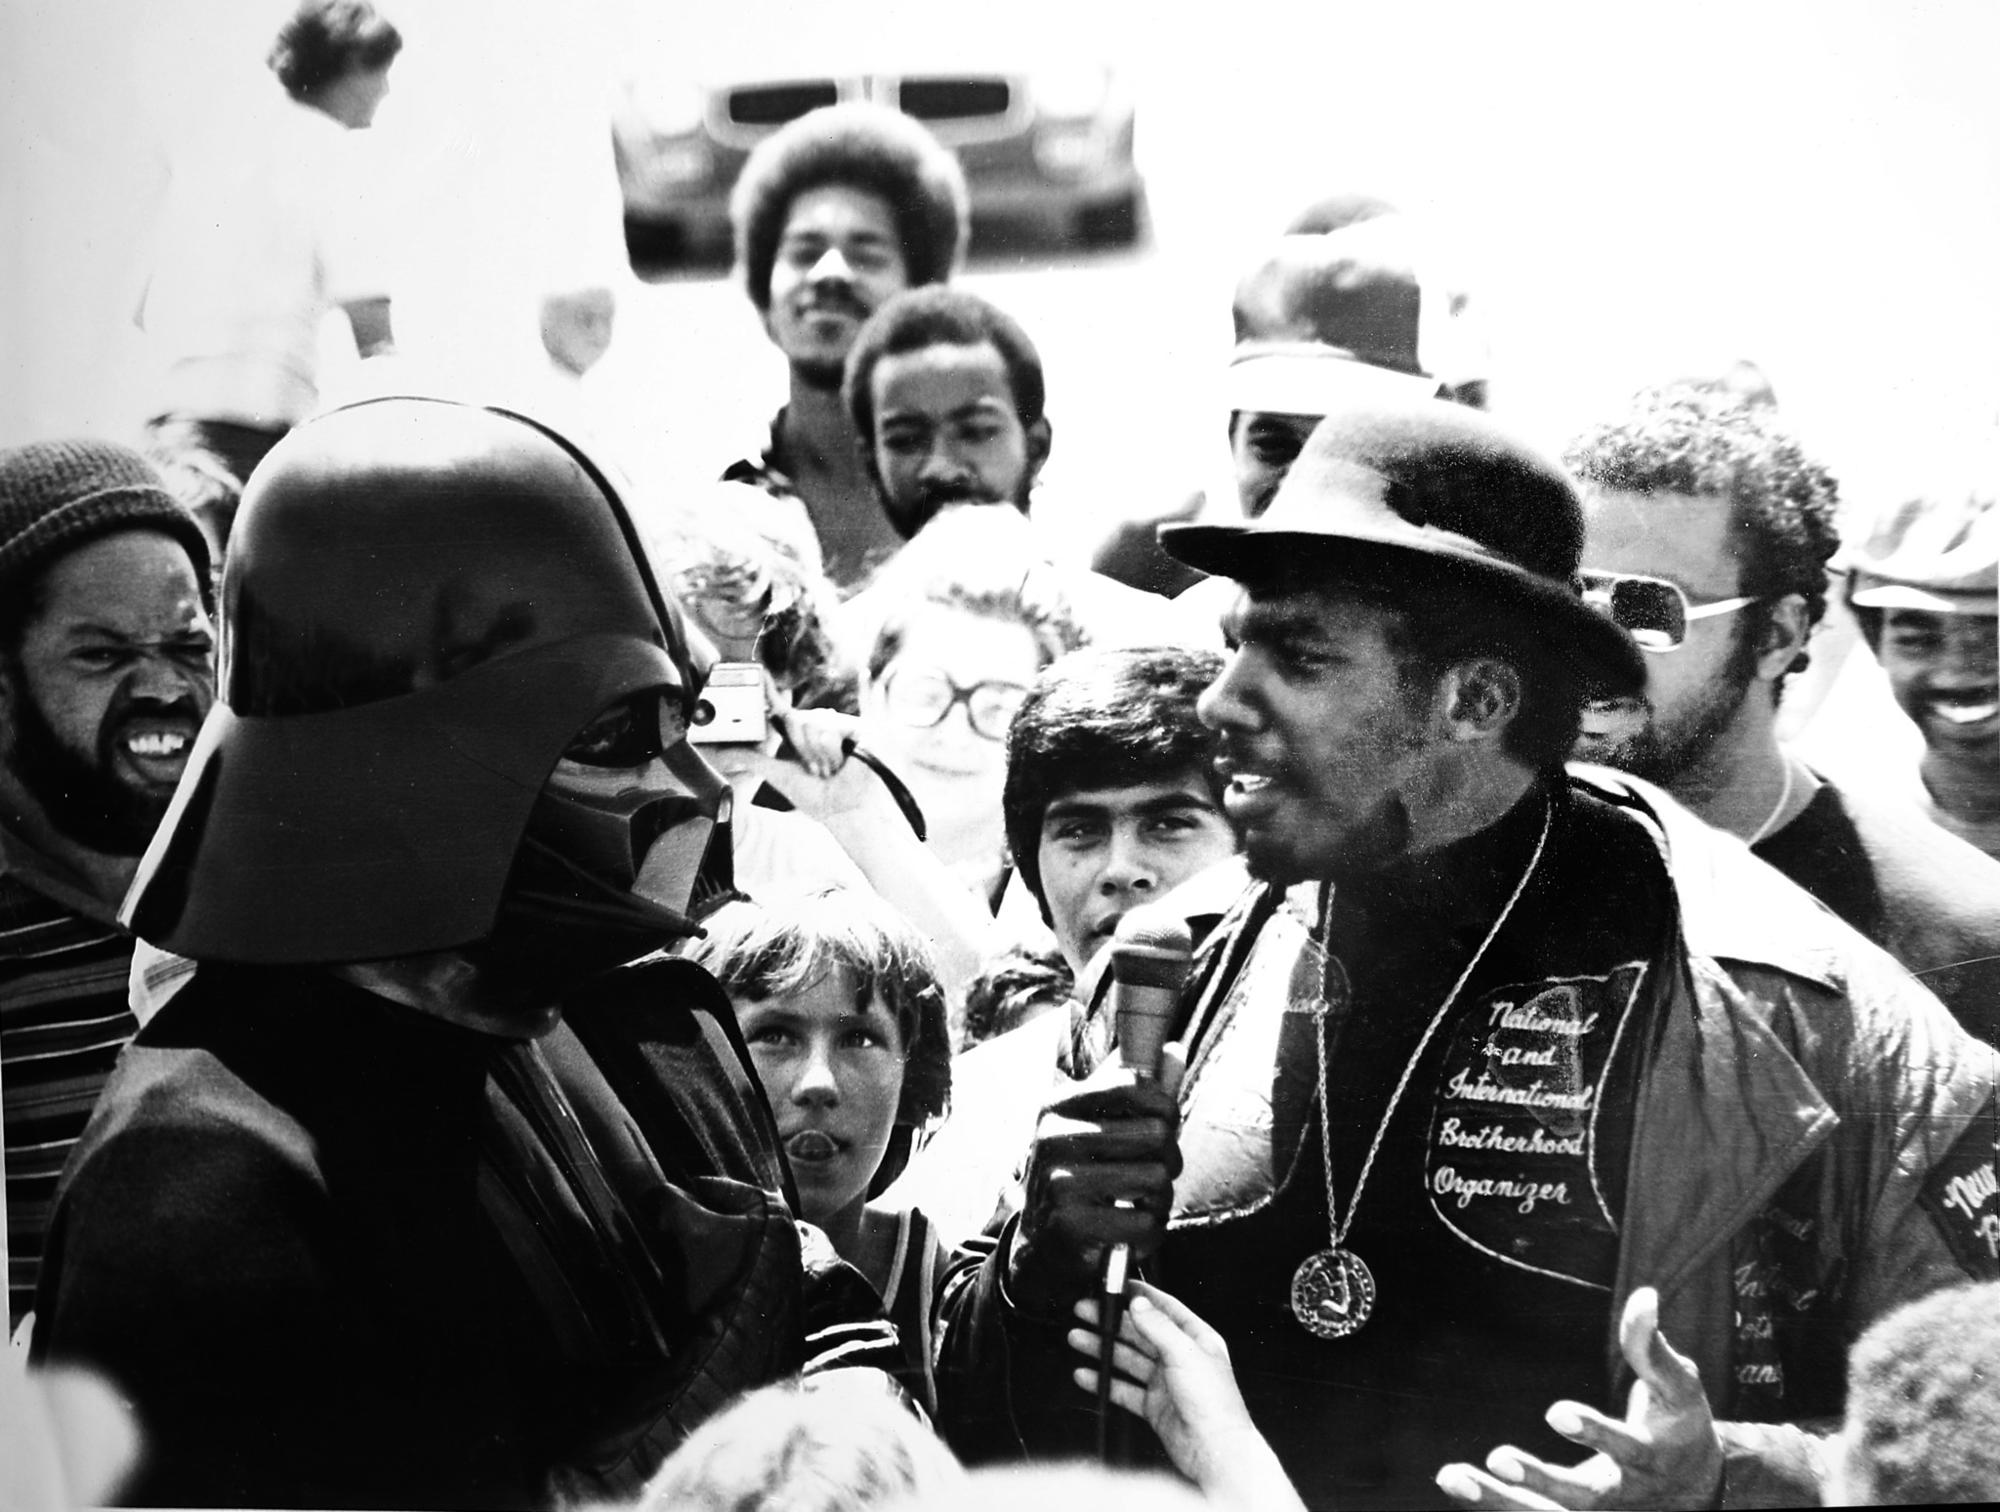 Darth Vader and Big Willie Robinson